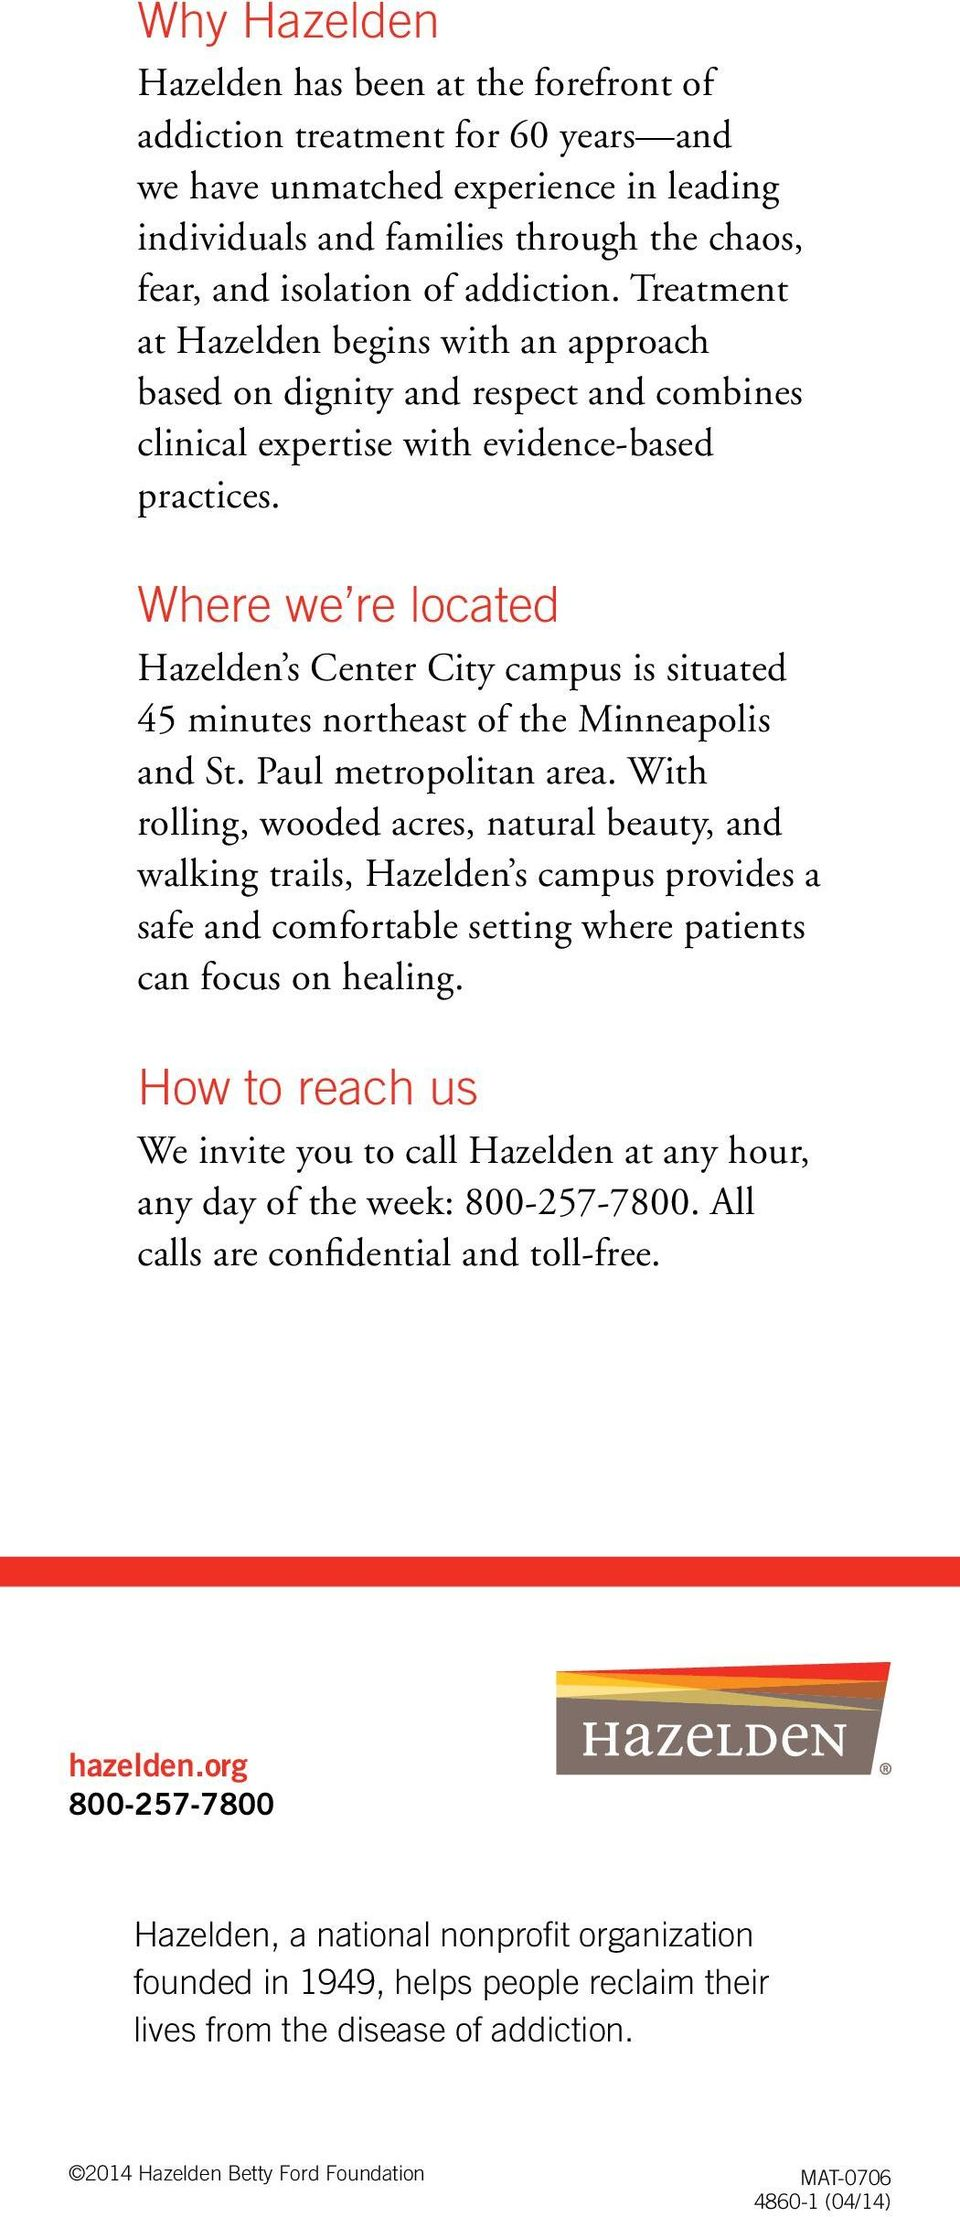 Where we re located Hazelden s Center City campus is situated 45 minutes northeast of the Minneapolis and St. Paul metropolitan area.